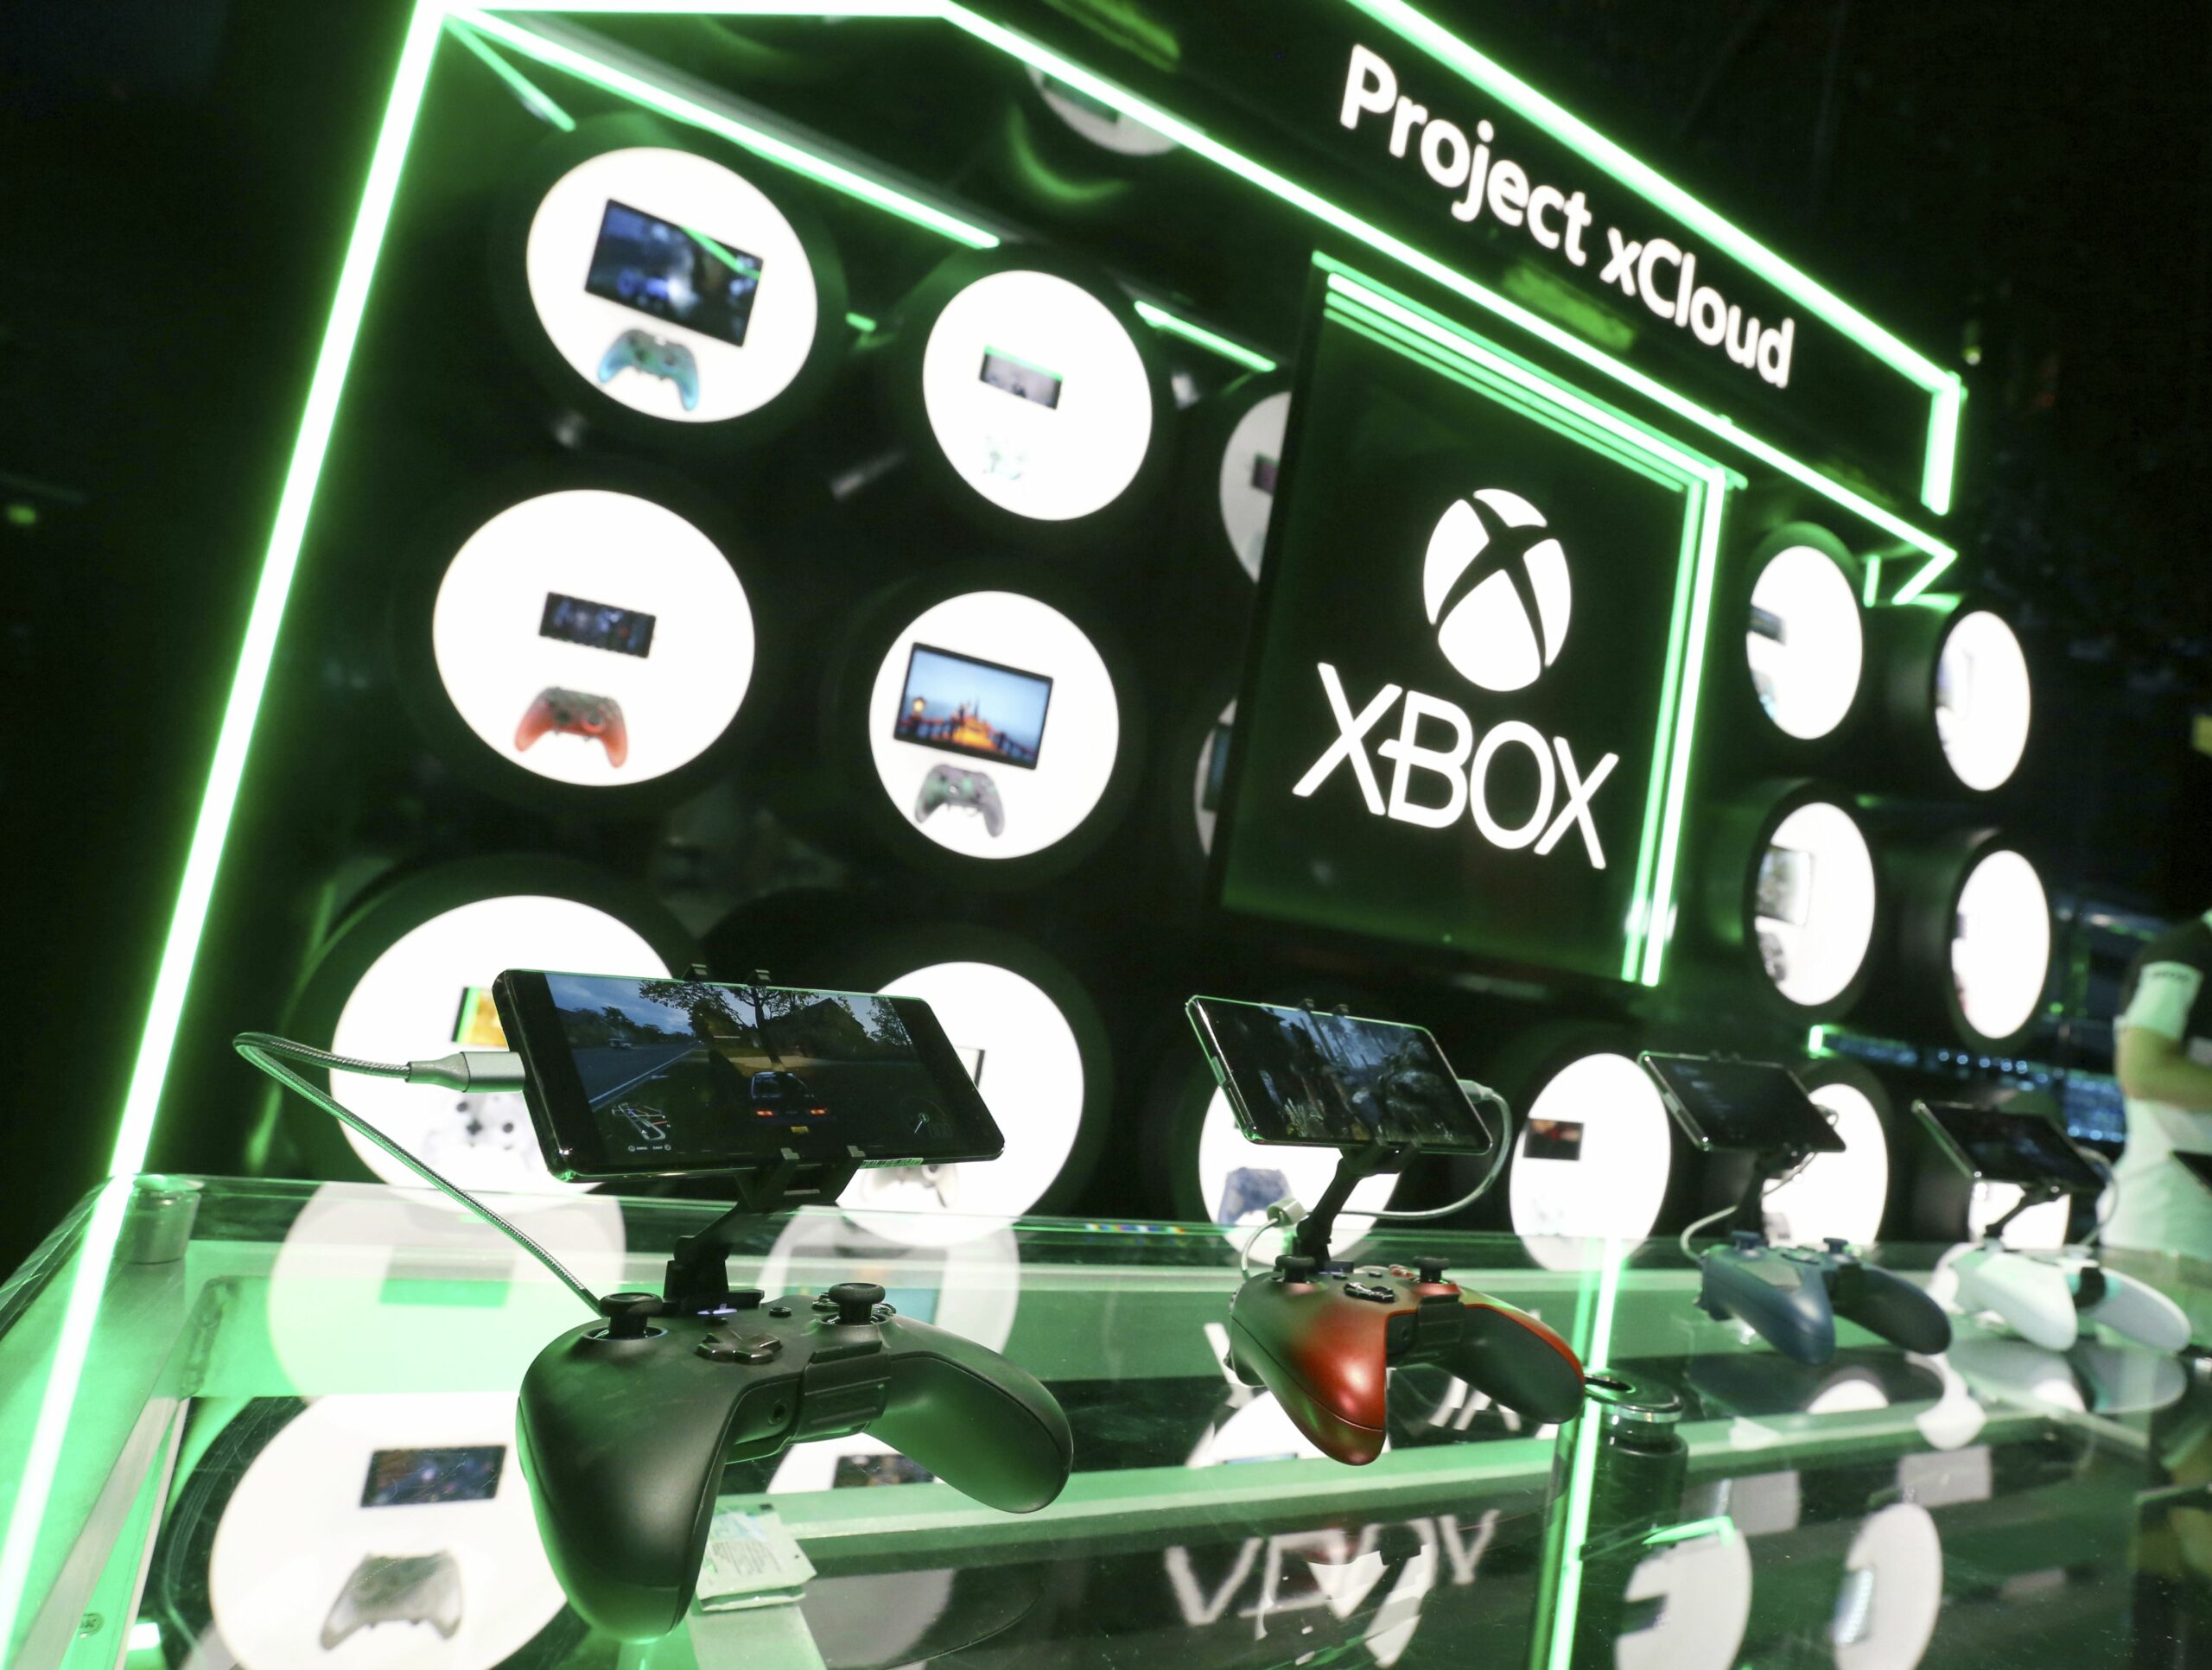 Microsoft's Recreation Move Supreme receives Challenge xCloud recreation streaming on Sept. 15 for $14.99 per month